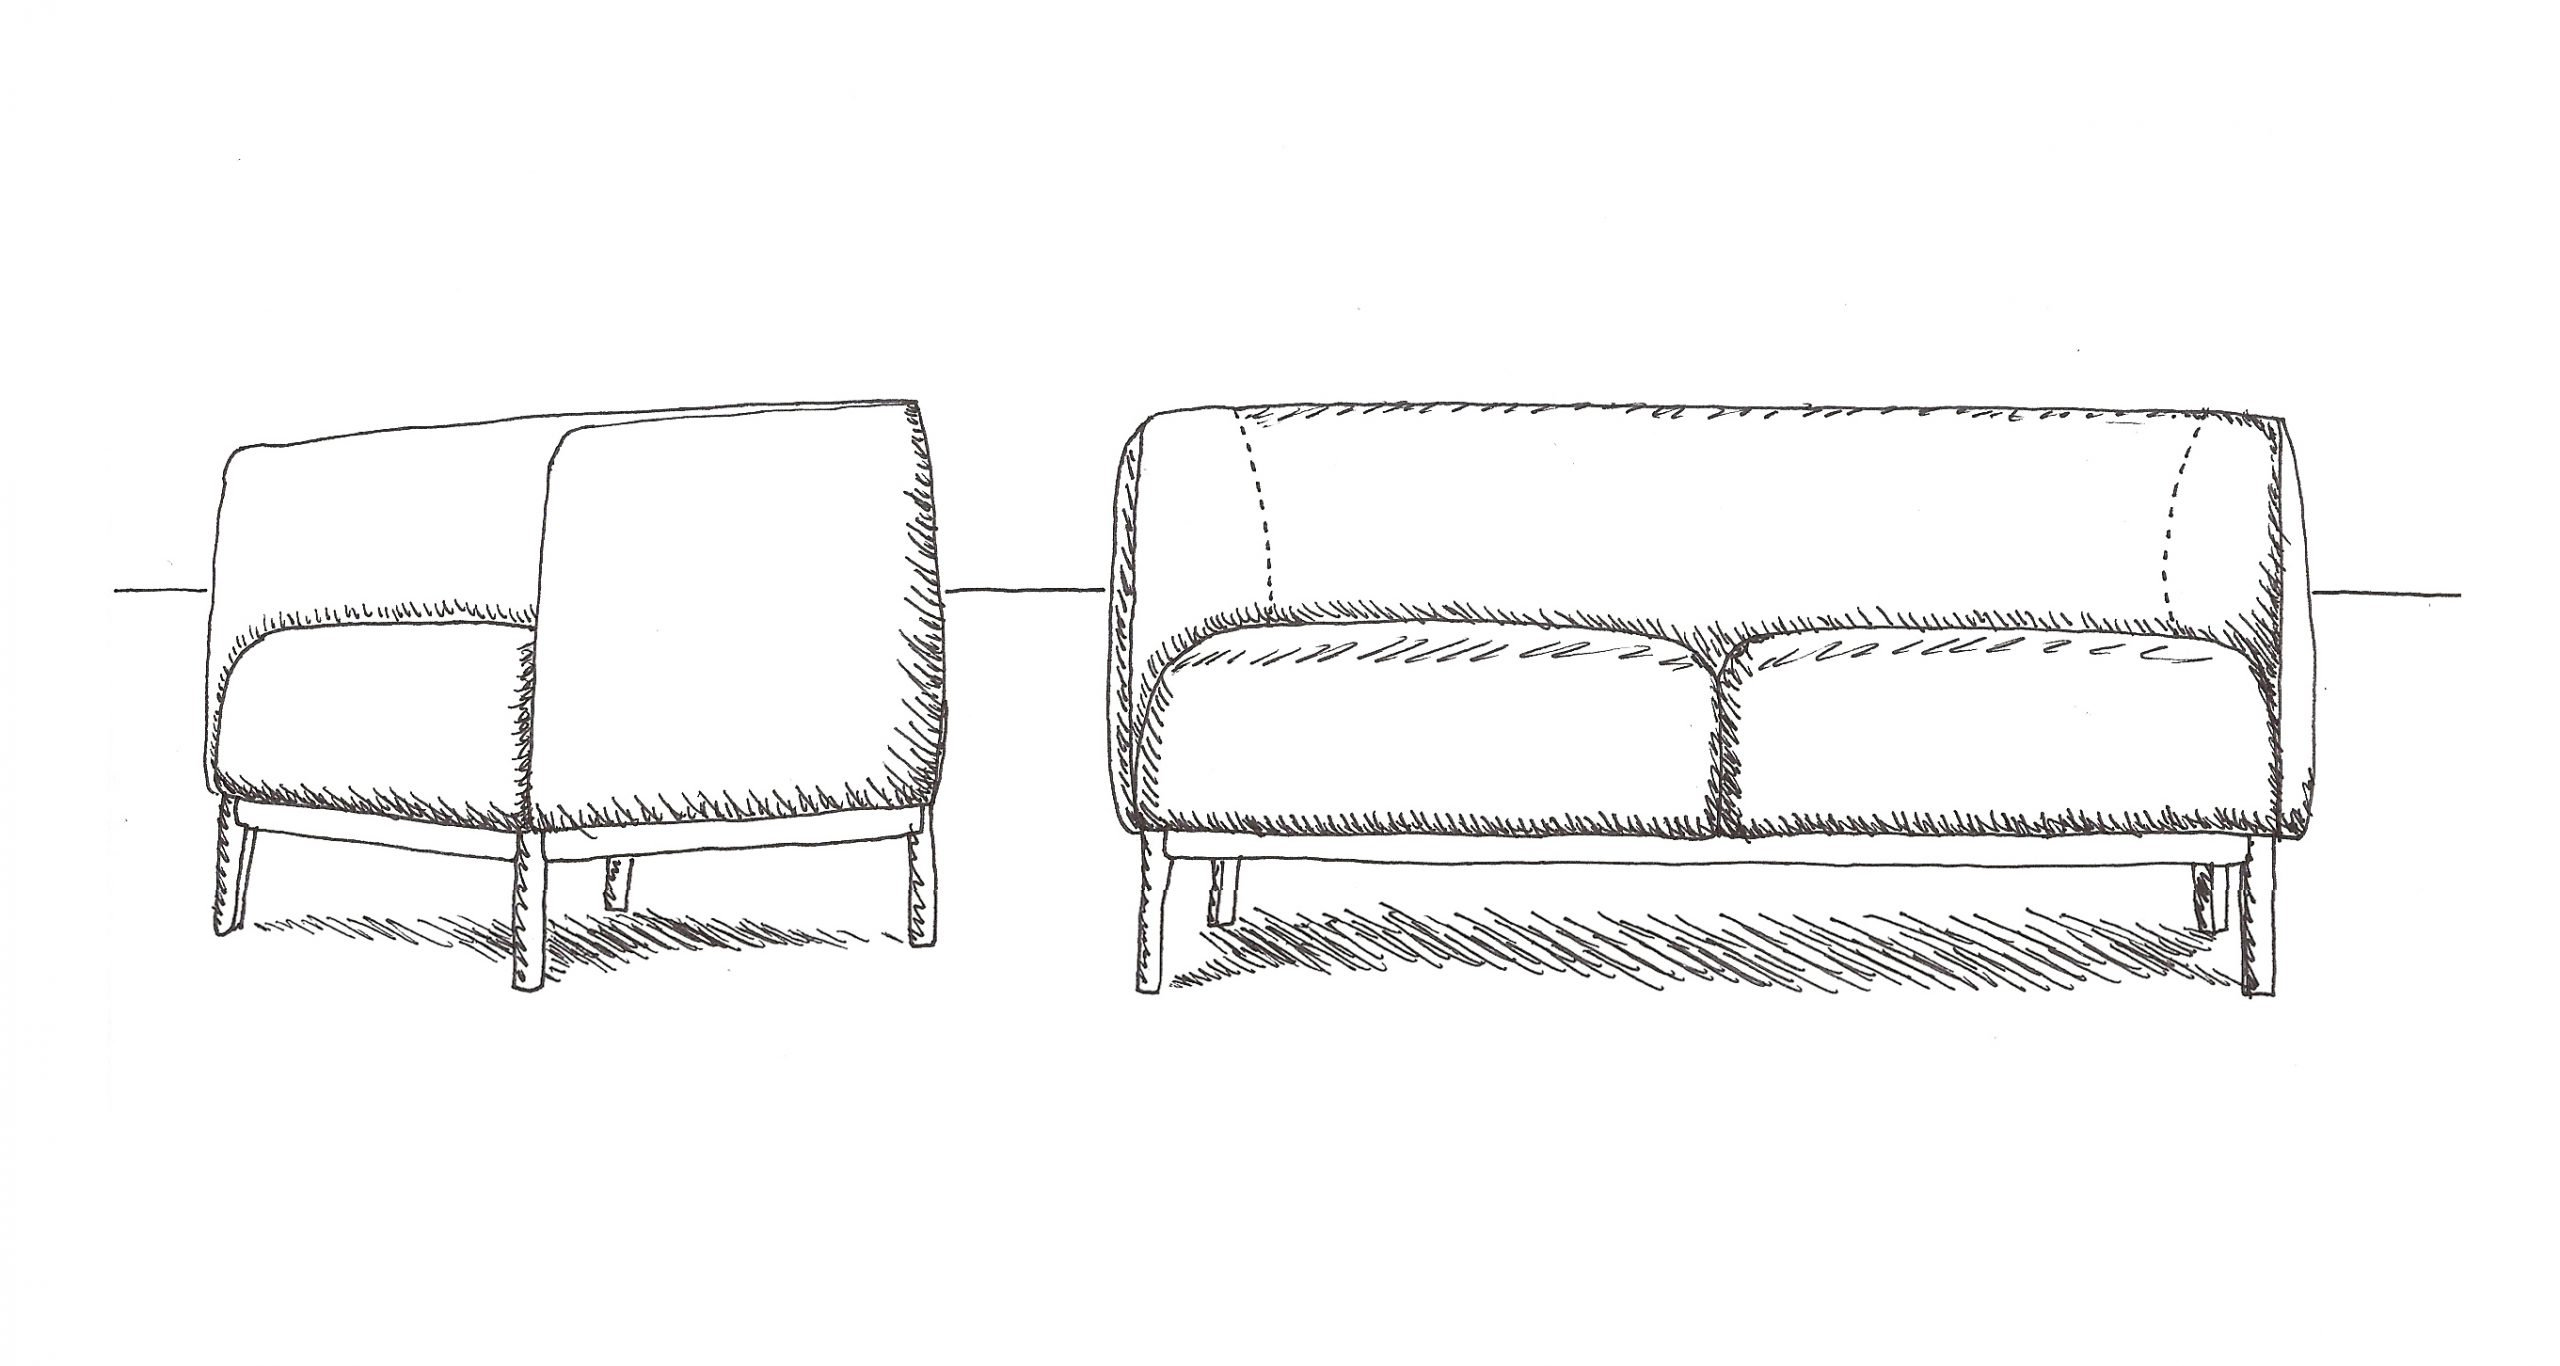 Sketch of the Cape sofa and lounge chair by Debiasi Sandri for Tekhne